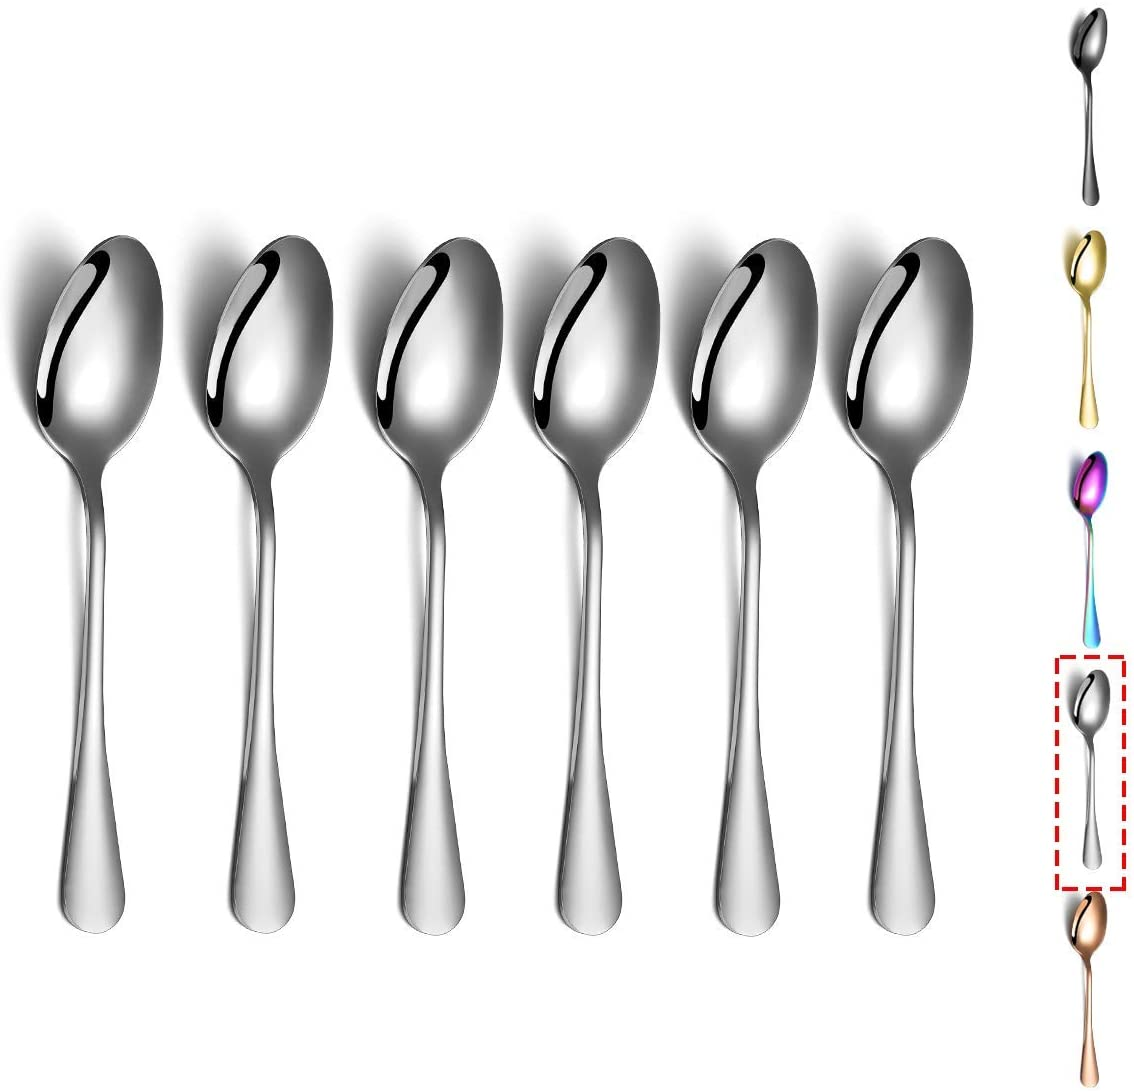 Black Soup Spoons Black Dinner Spoon Table Spoon Spoons Silverware Dishwasher Safe Set of 6 Kyraton 6 Pieces Stainless Steel Round Spoons With Black Titanium Plating